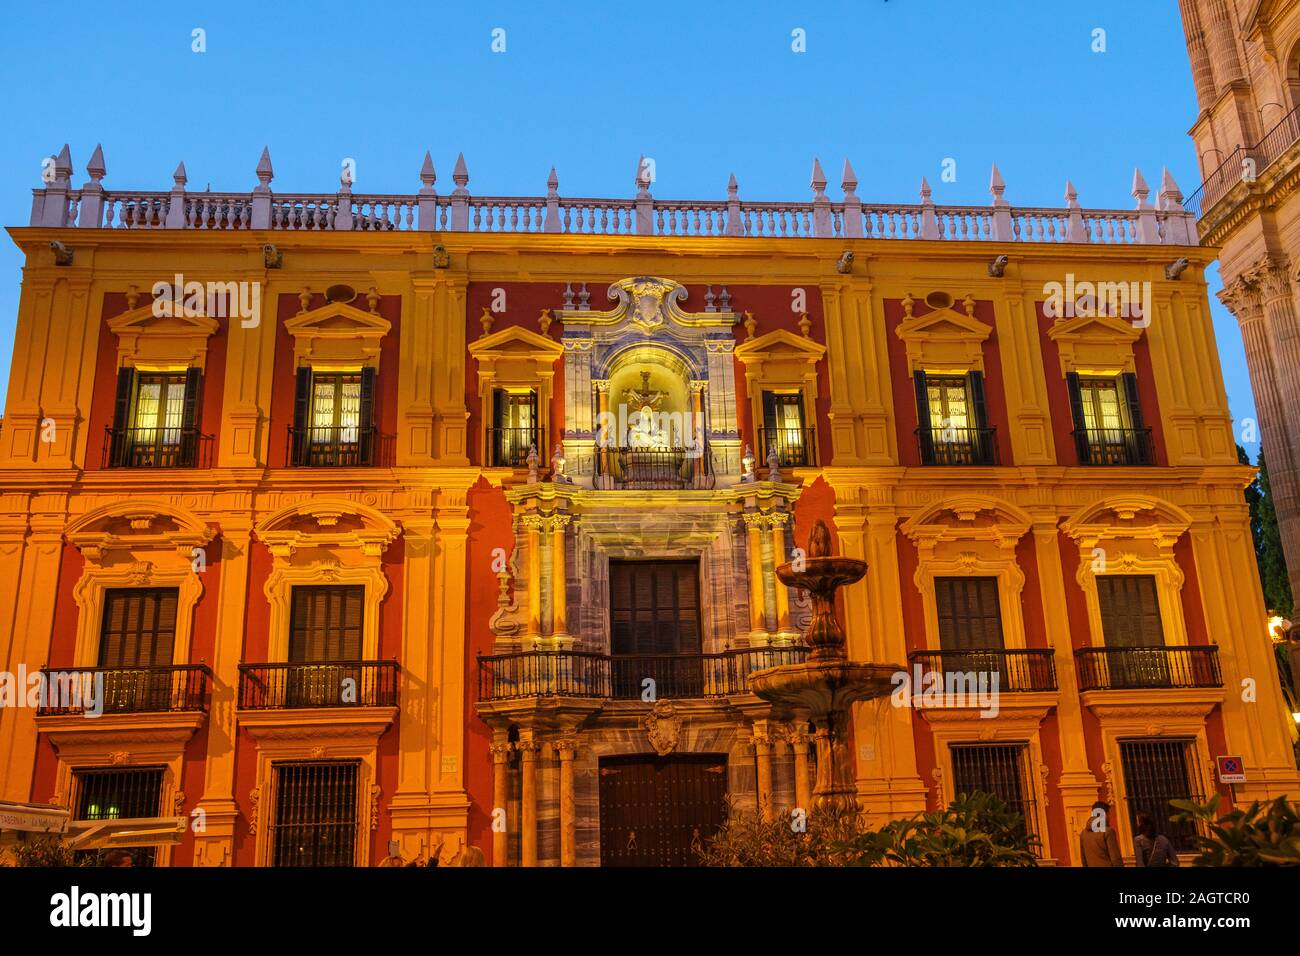 Religious building of the Episcopal palace at dusk, Málaga capital. Costa del Sol, Andalusia south of Spain. Europe Stock Photo